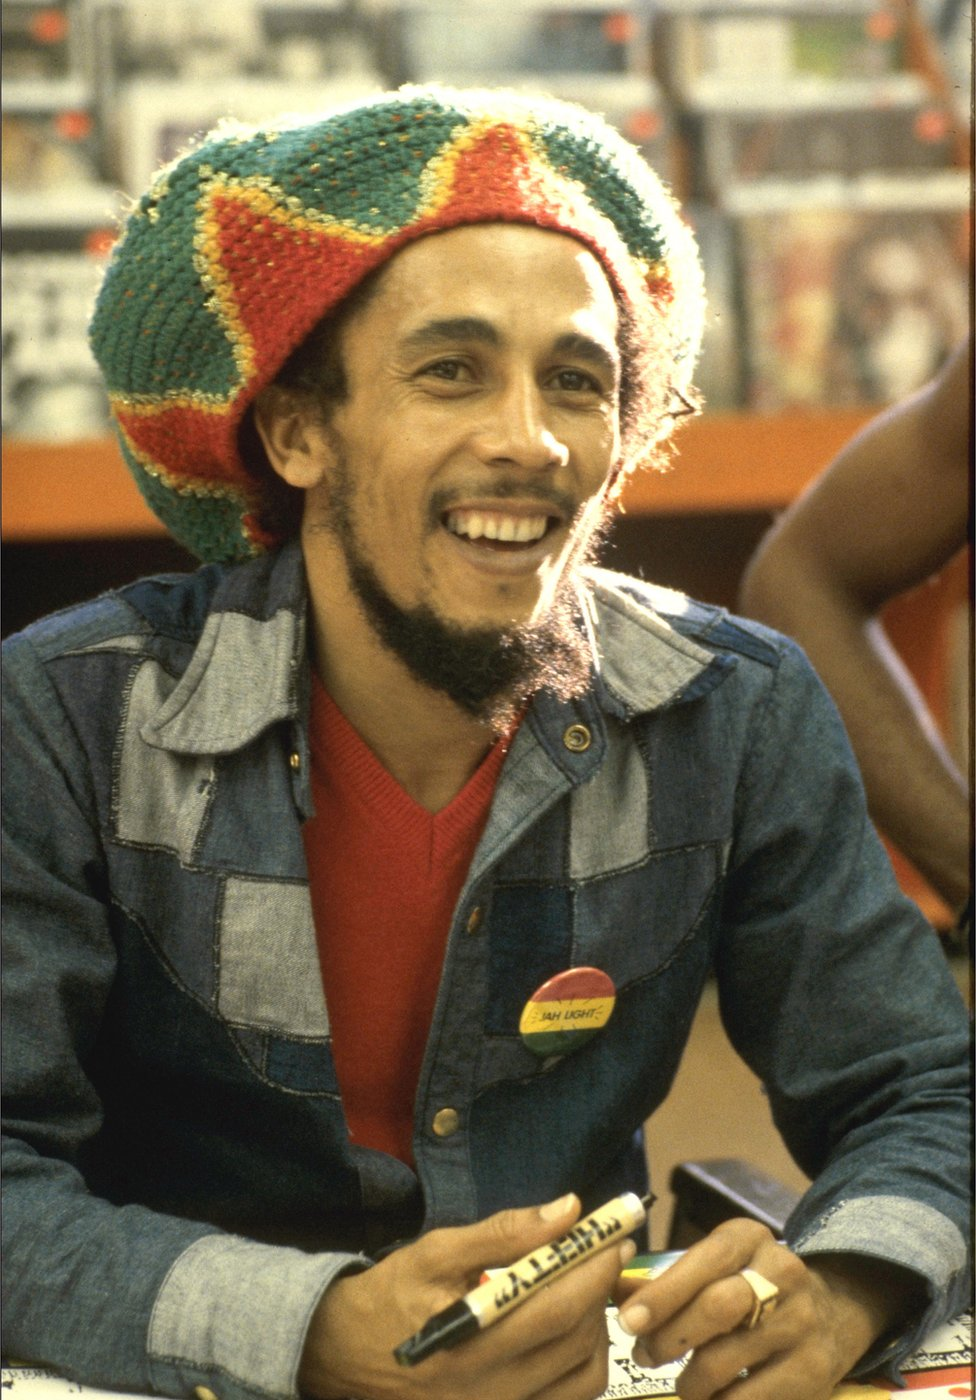 Bob Marley sits at a table holding a pen